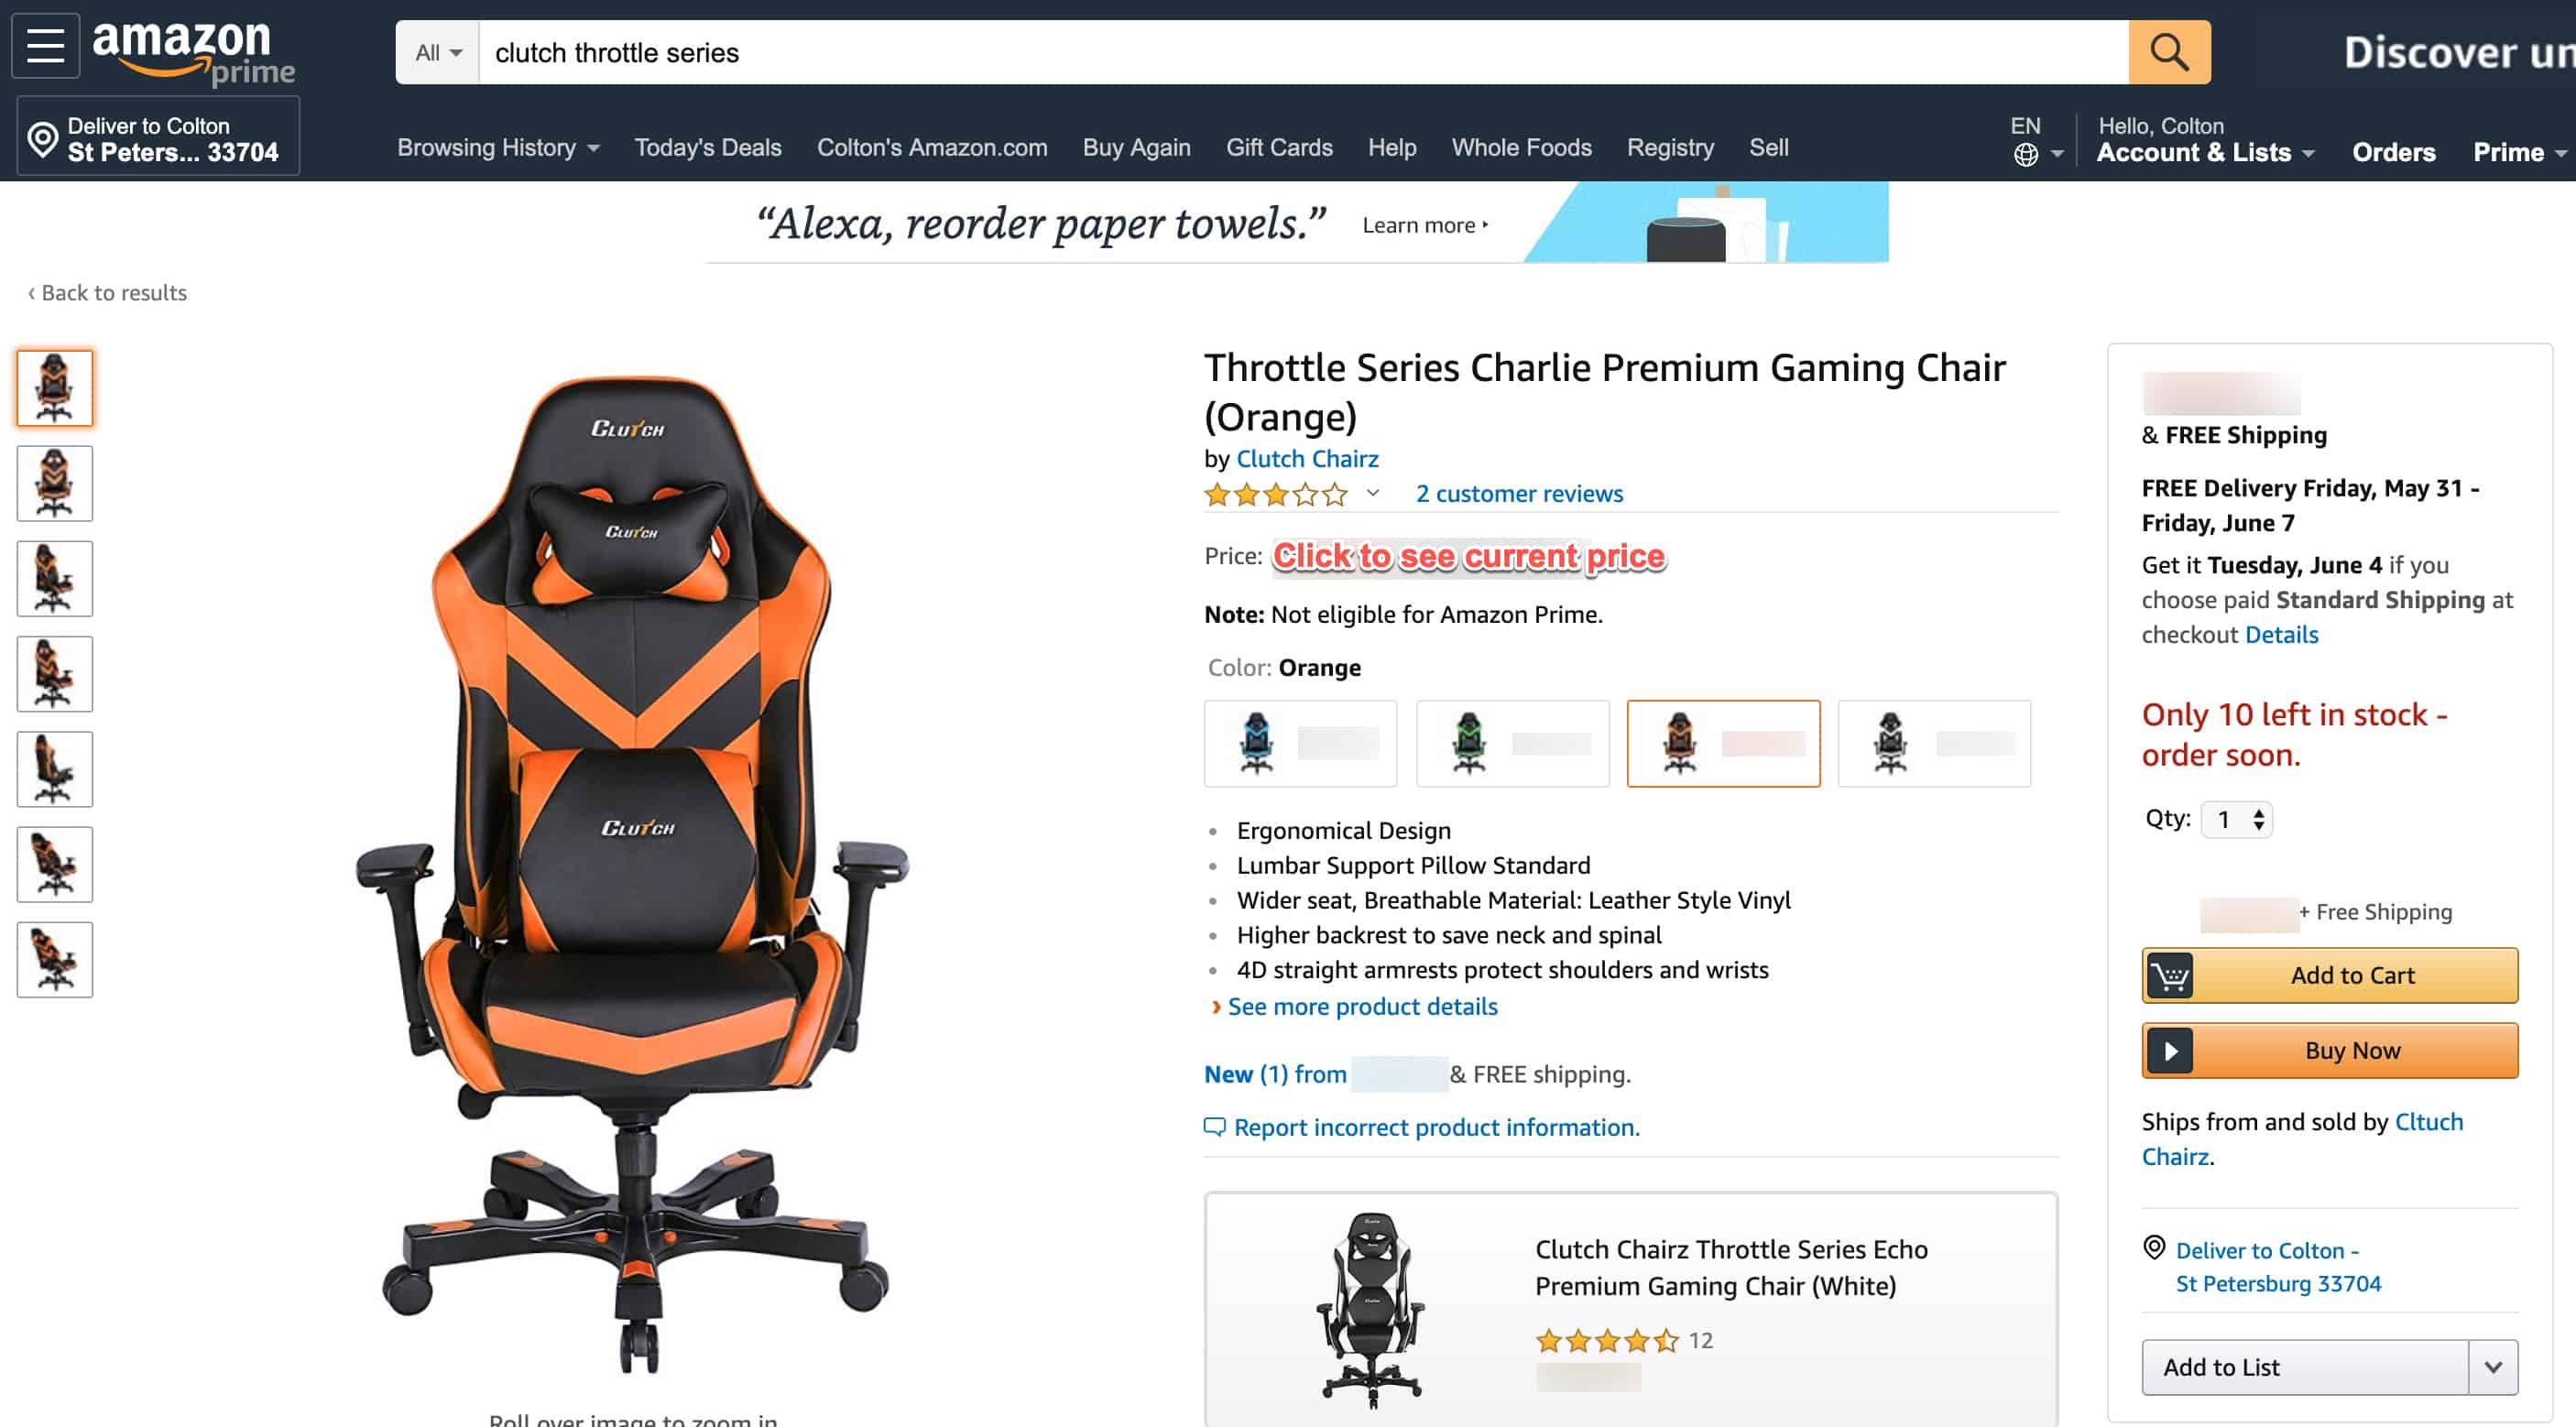 base throttle series gaming chair from clutch